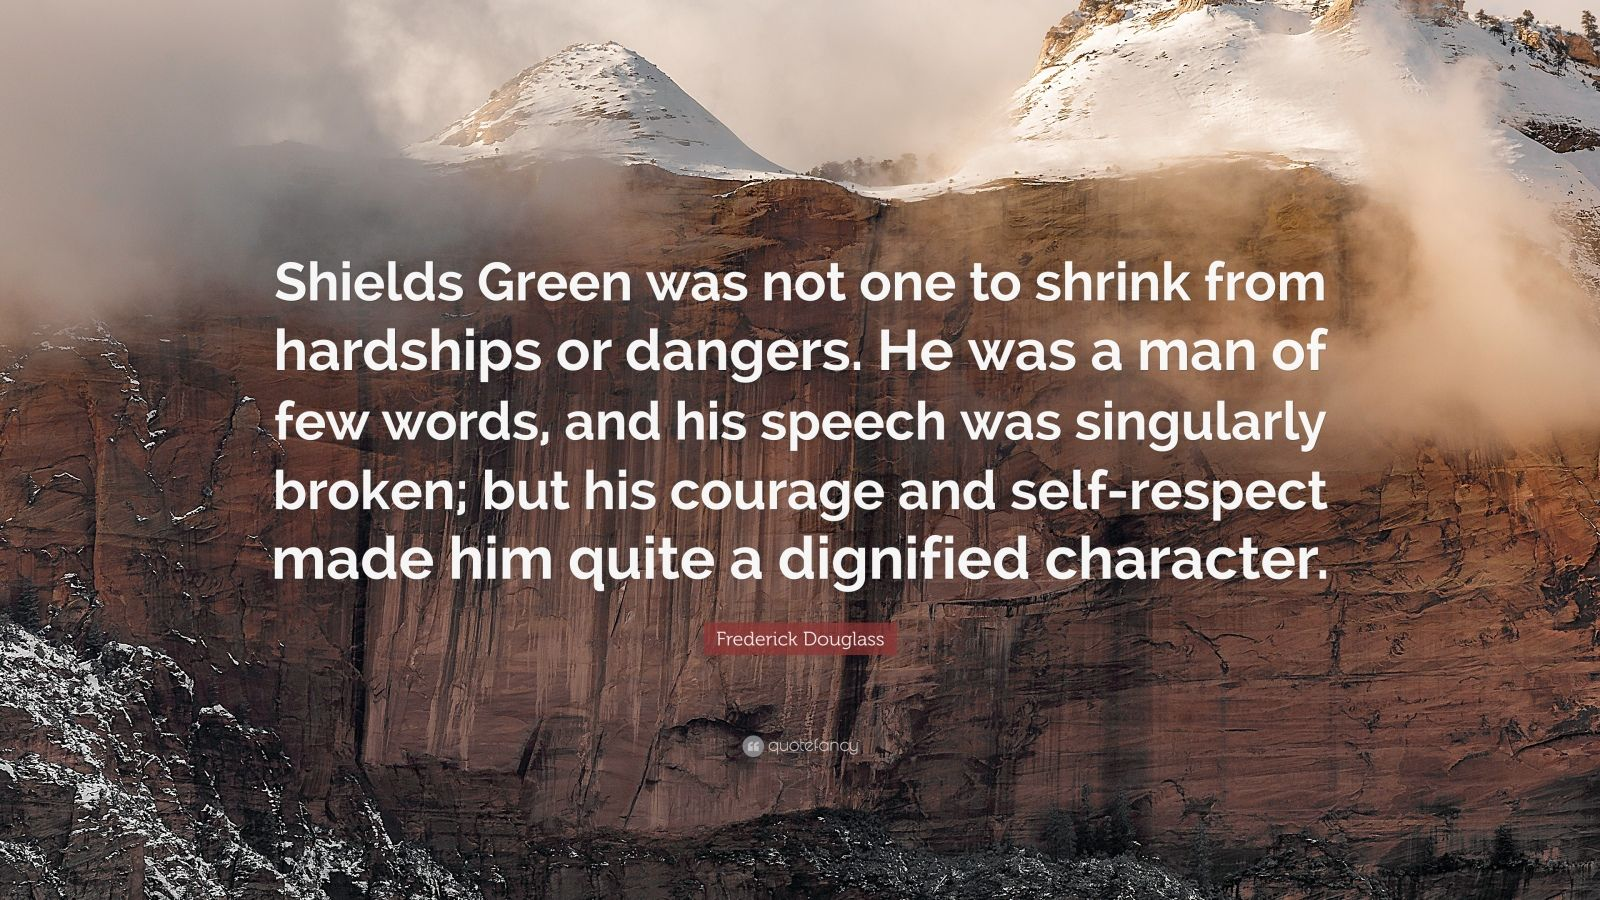 """Frederick Douglass Quote: """"Shields Green was not one to shrink from hardships or dangers. He was a man of few words, and his speech was singularly broken; but his courage and self-respect made him quite a dignified character."""""""